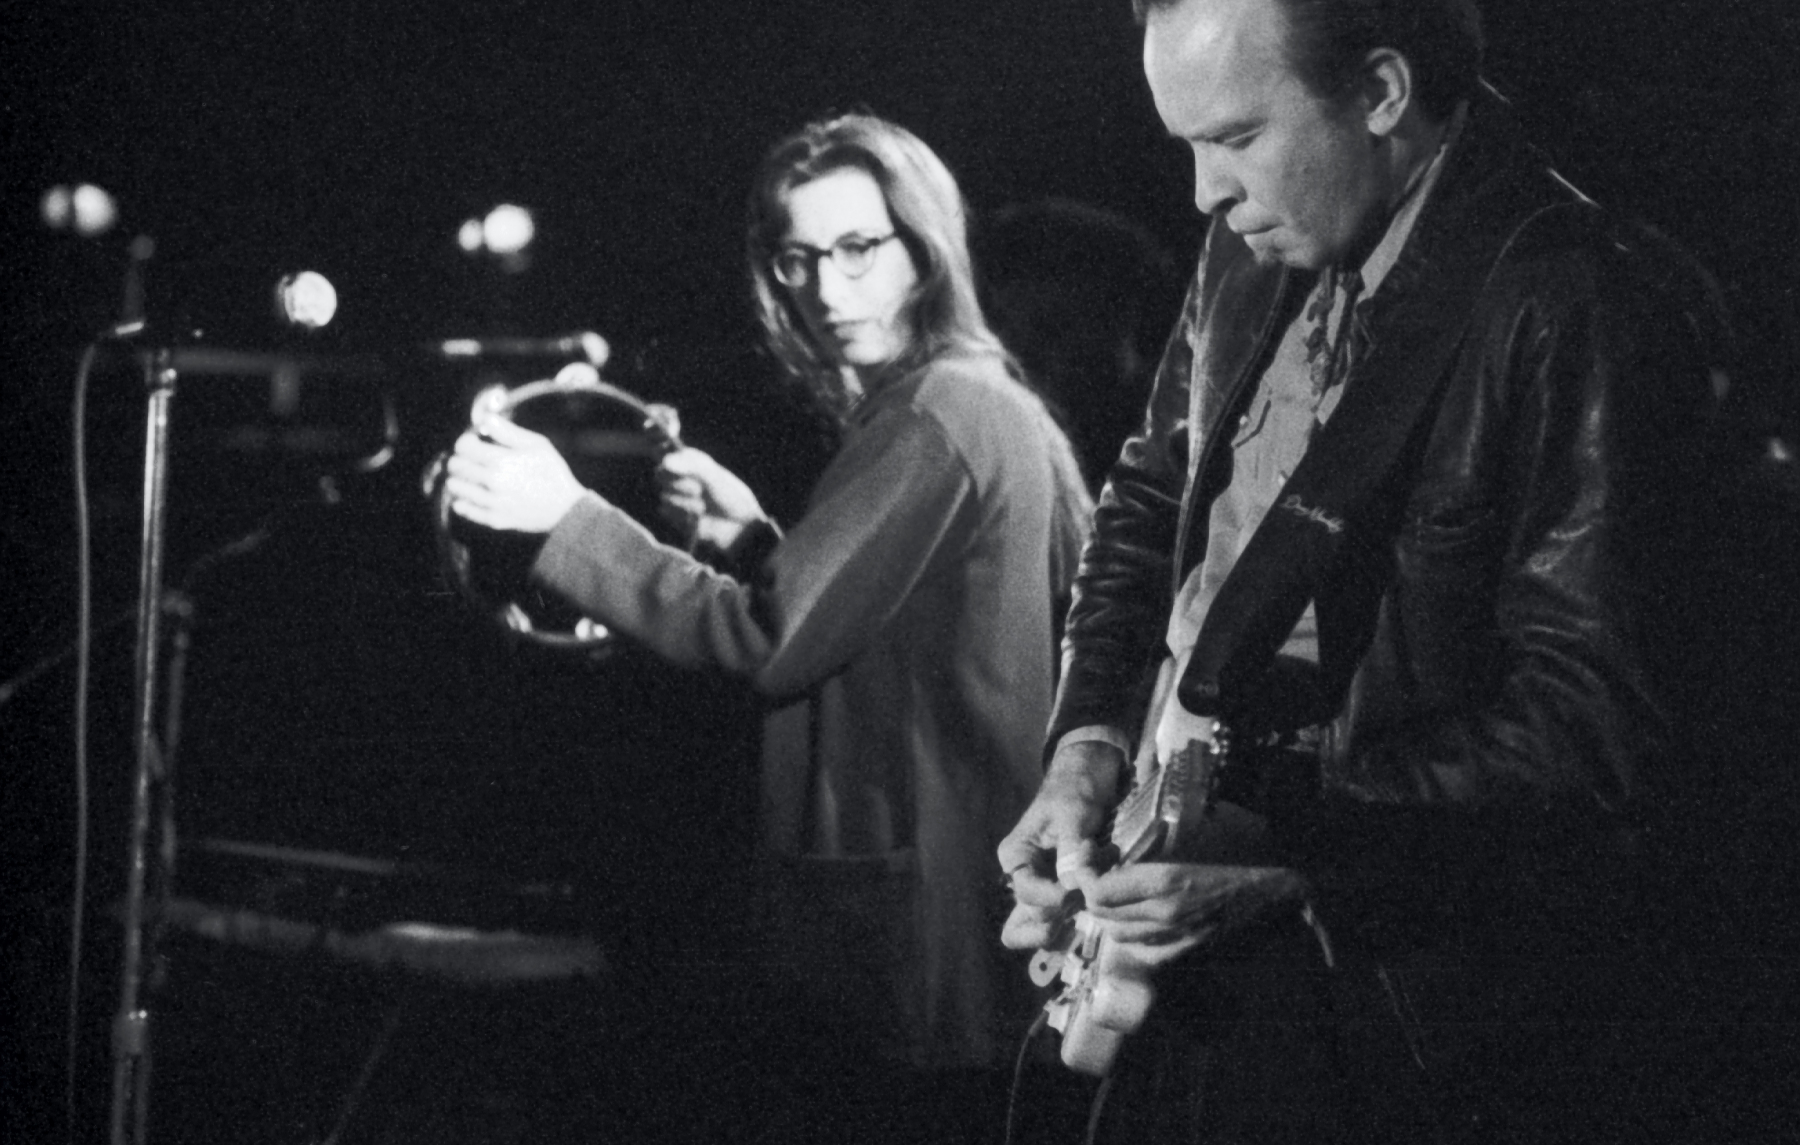 Syd Straw and Dave Alvin